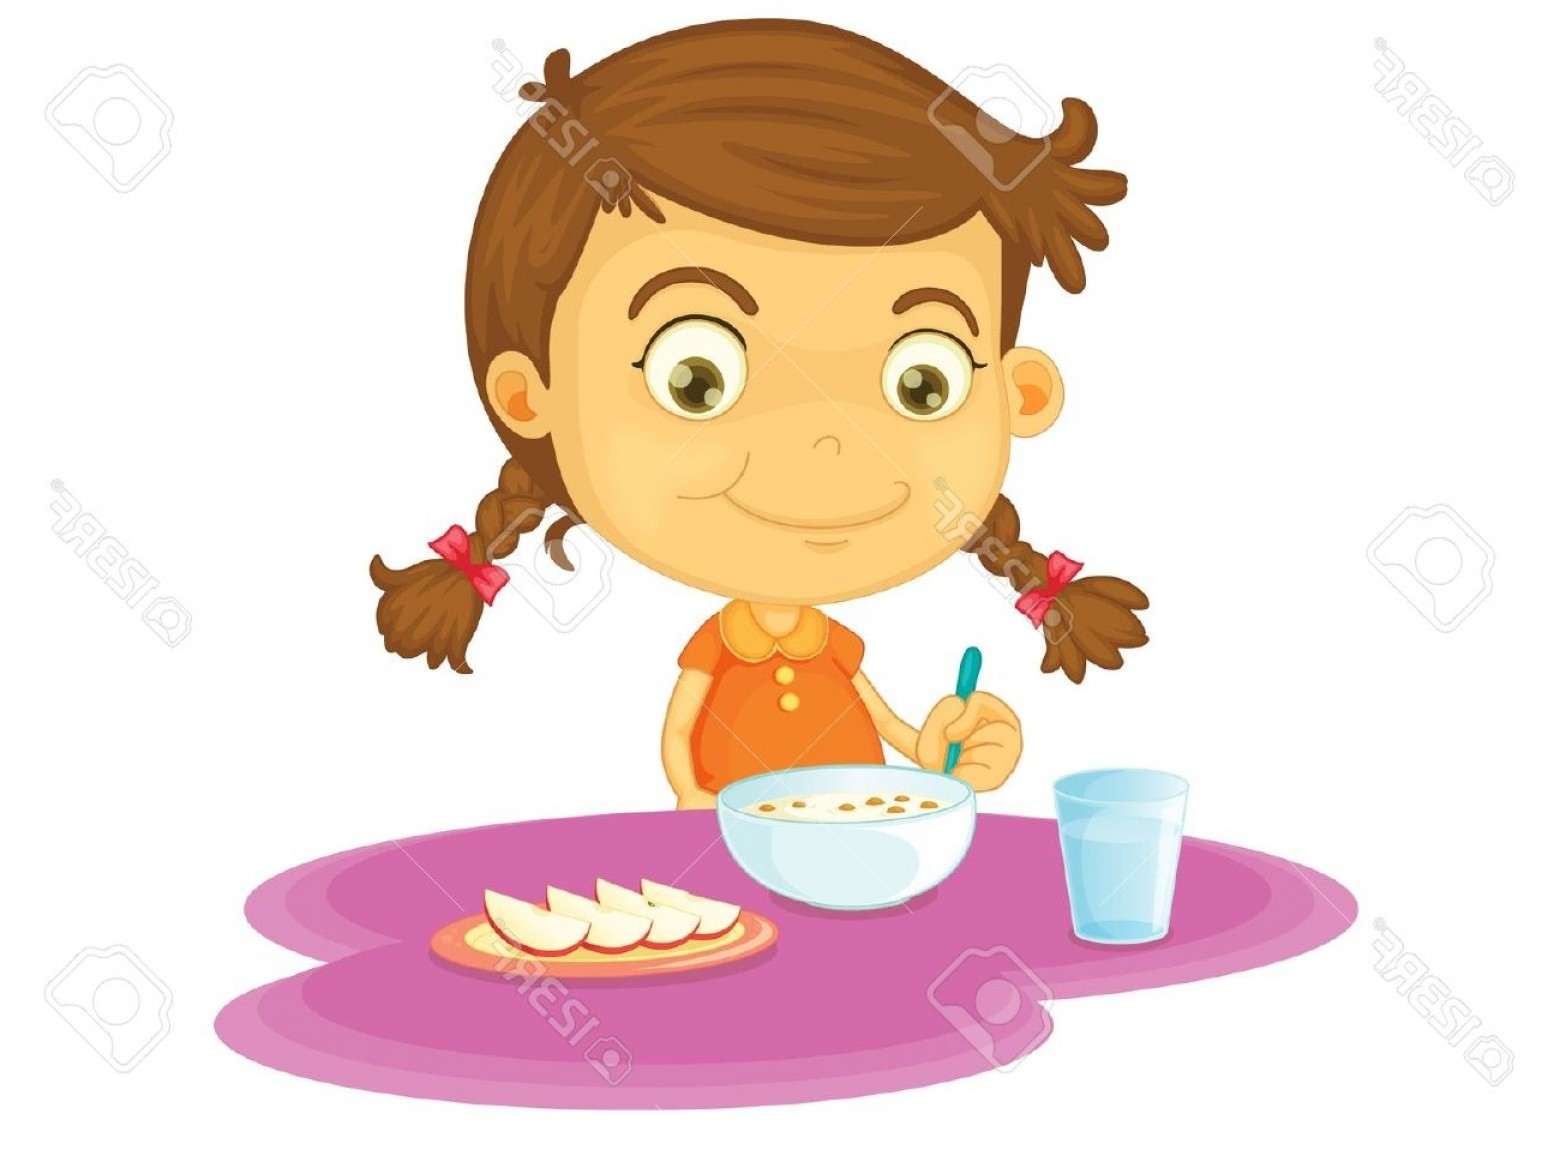 Girl Eating Clipart.